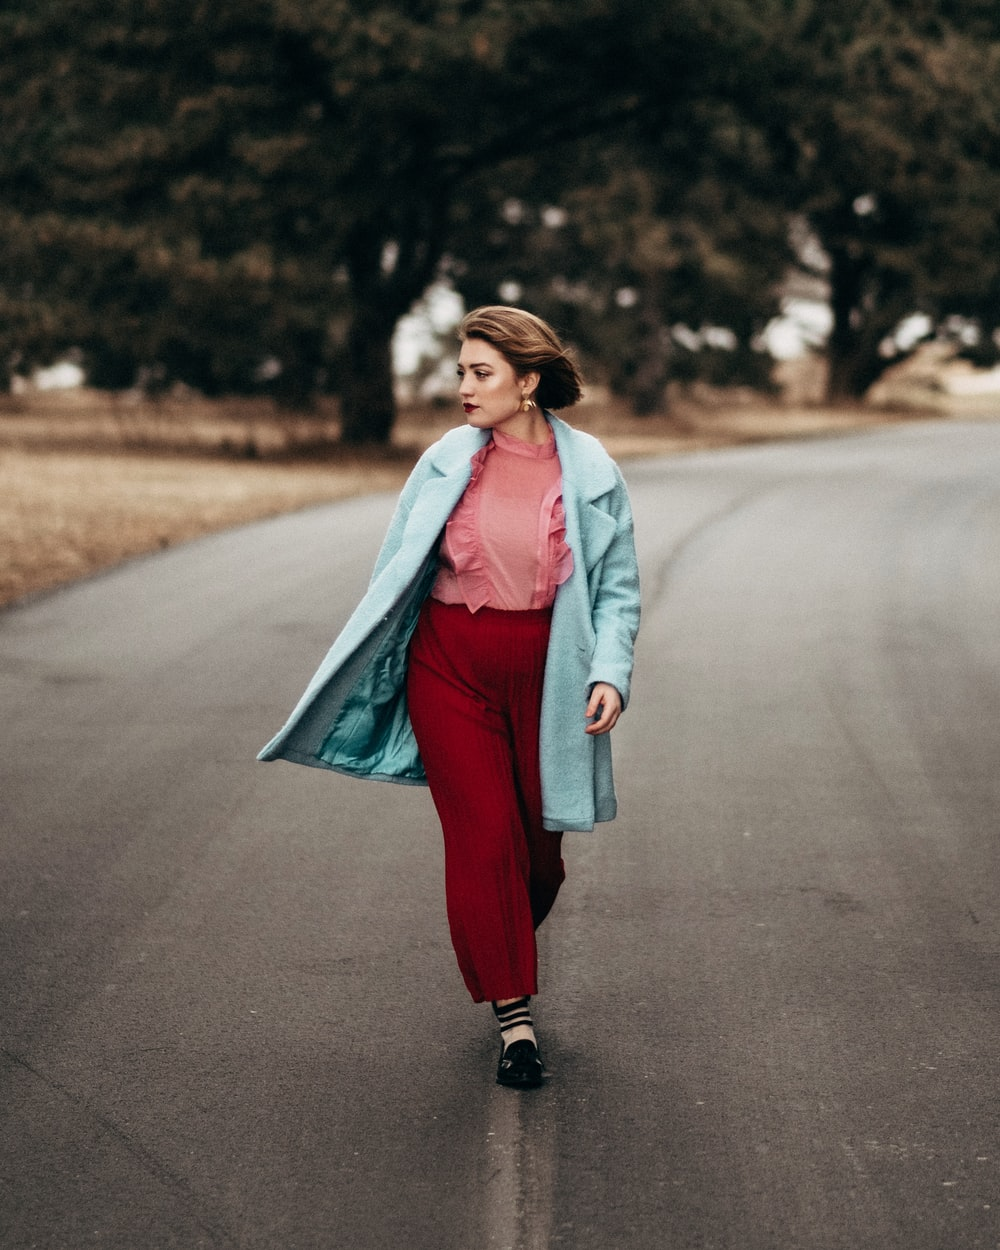 woman wearing teal coat and red pants walking on gray top road at day time